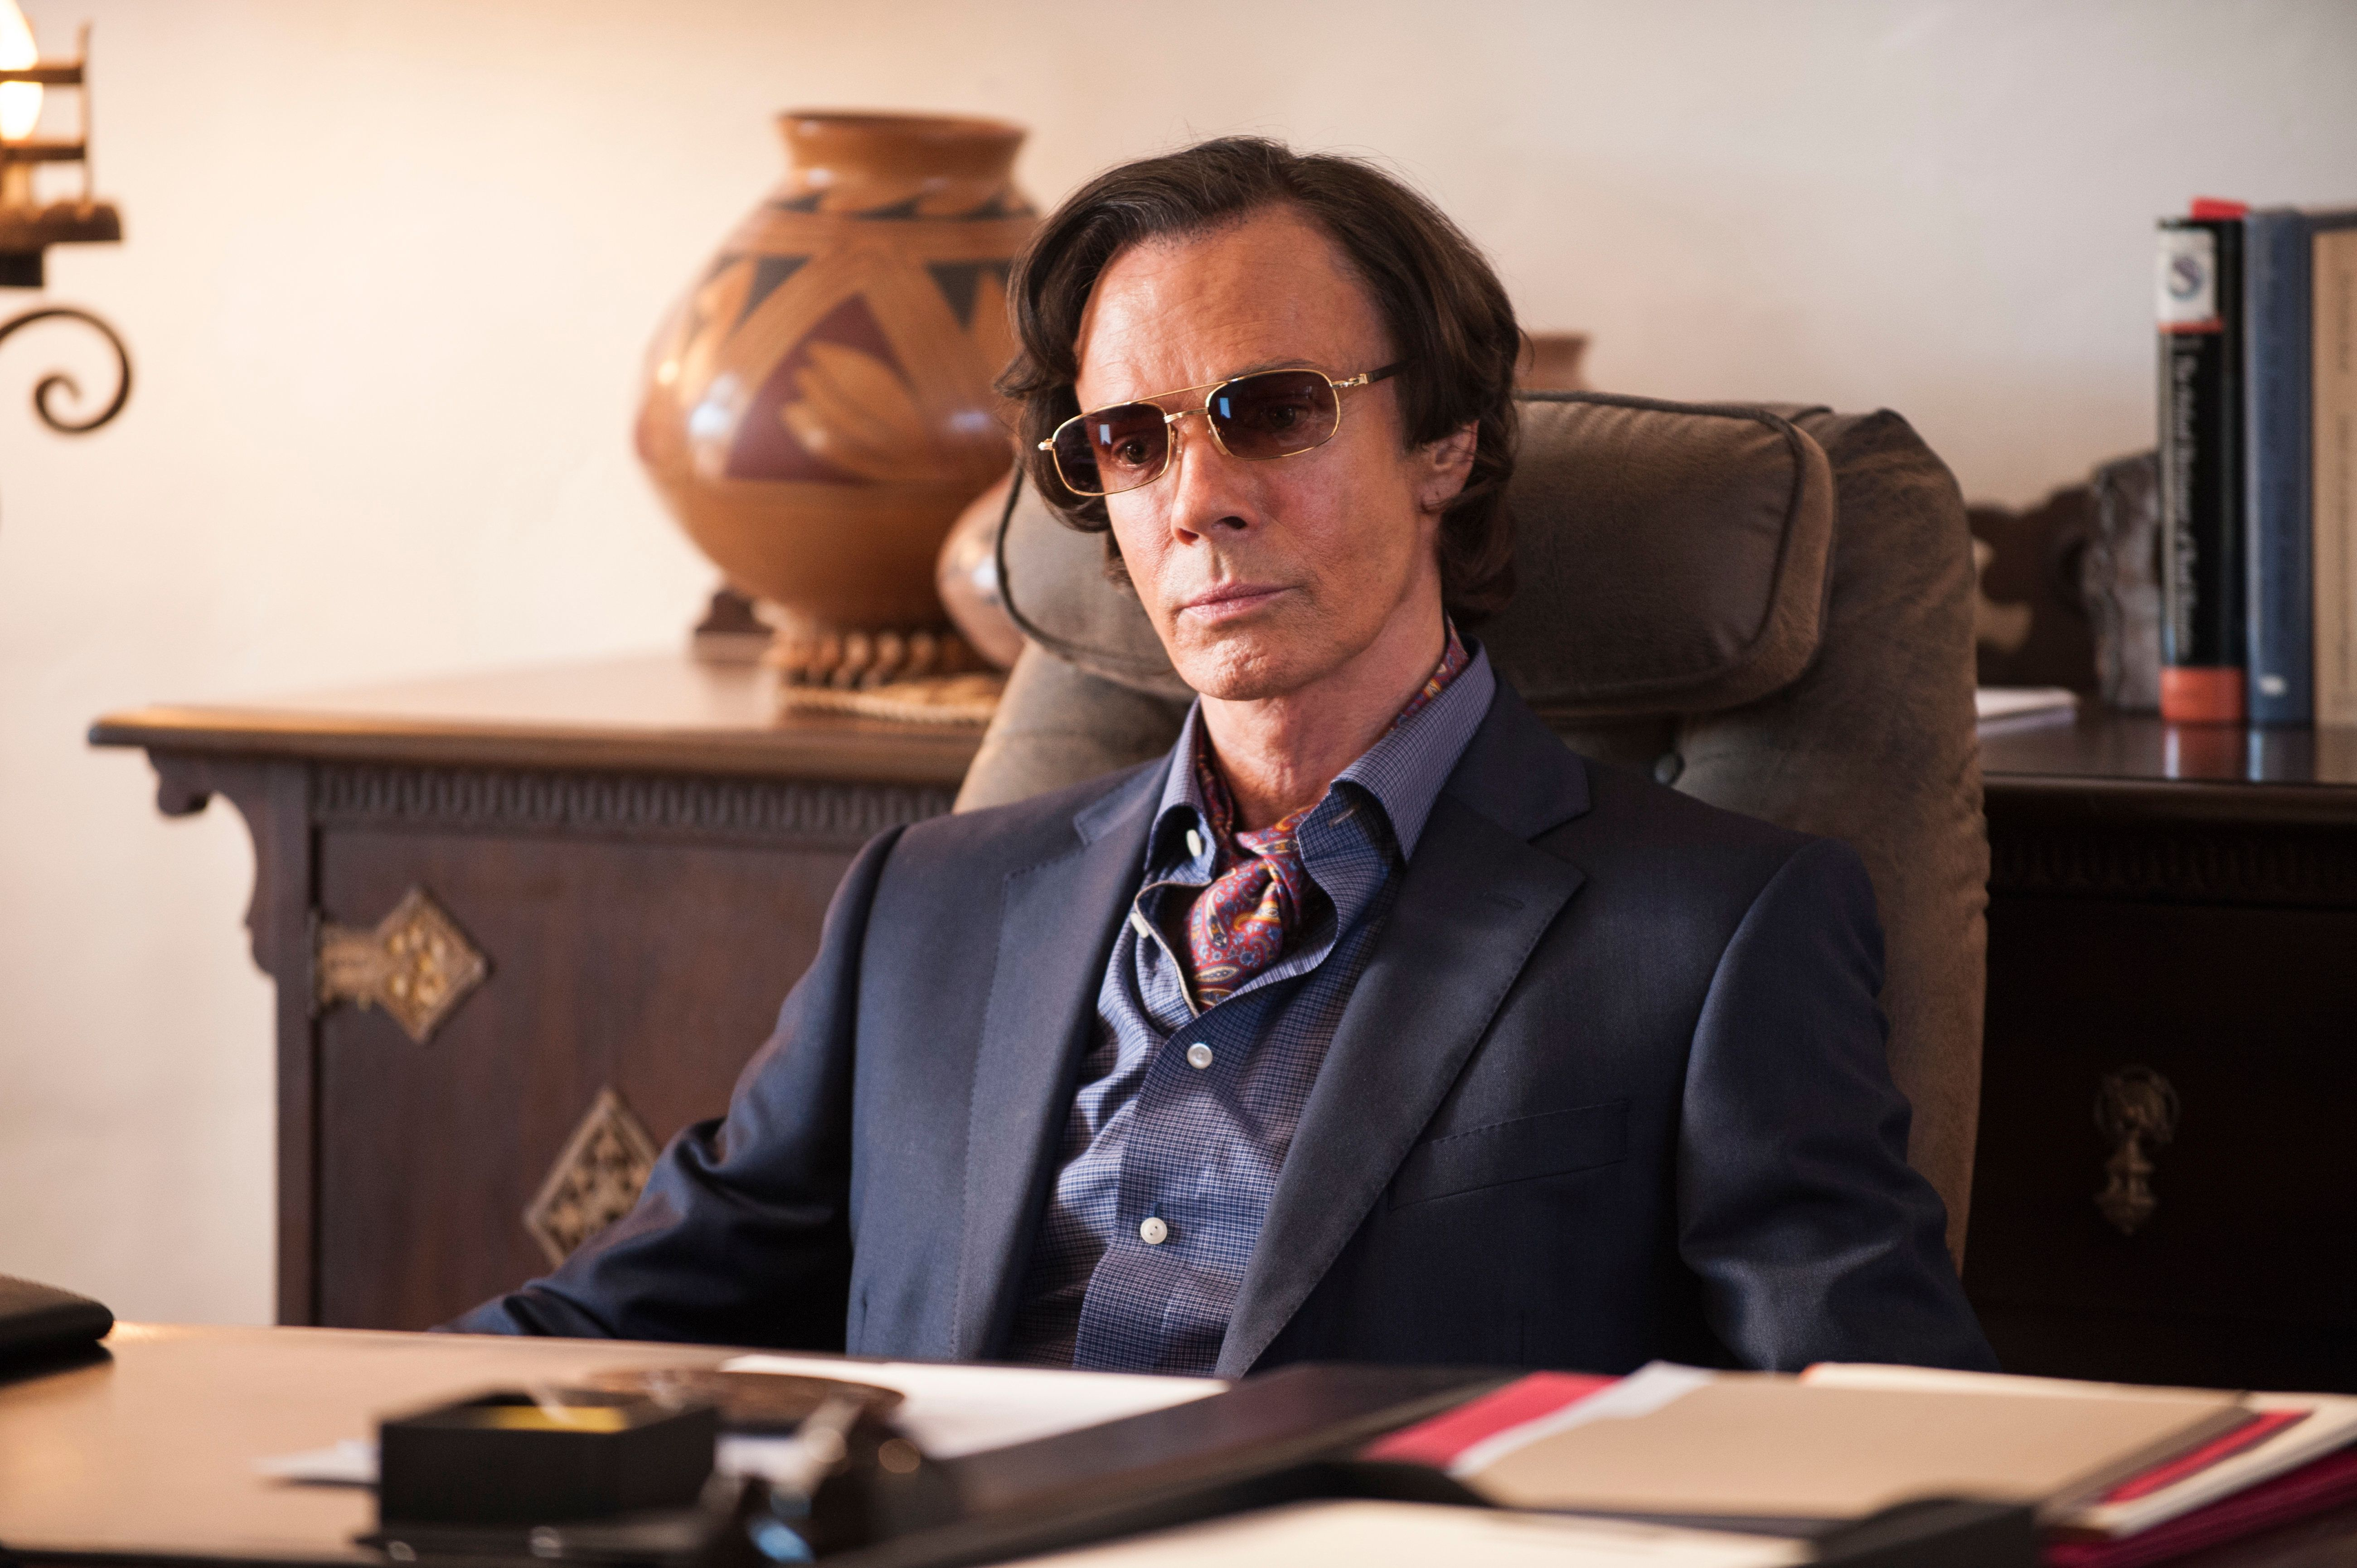 """Rick Springfield plays Dr. Irving Pitlor in Season 2 of HBO's """"True Detective."""""""